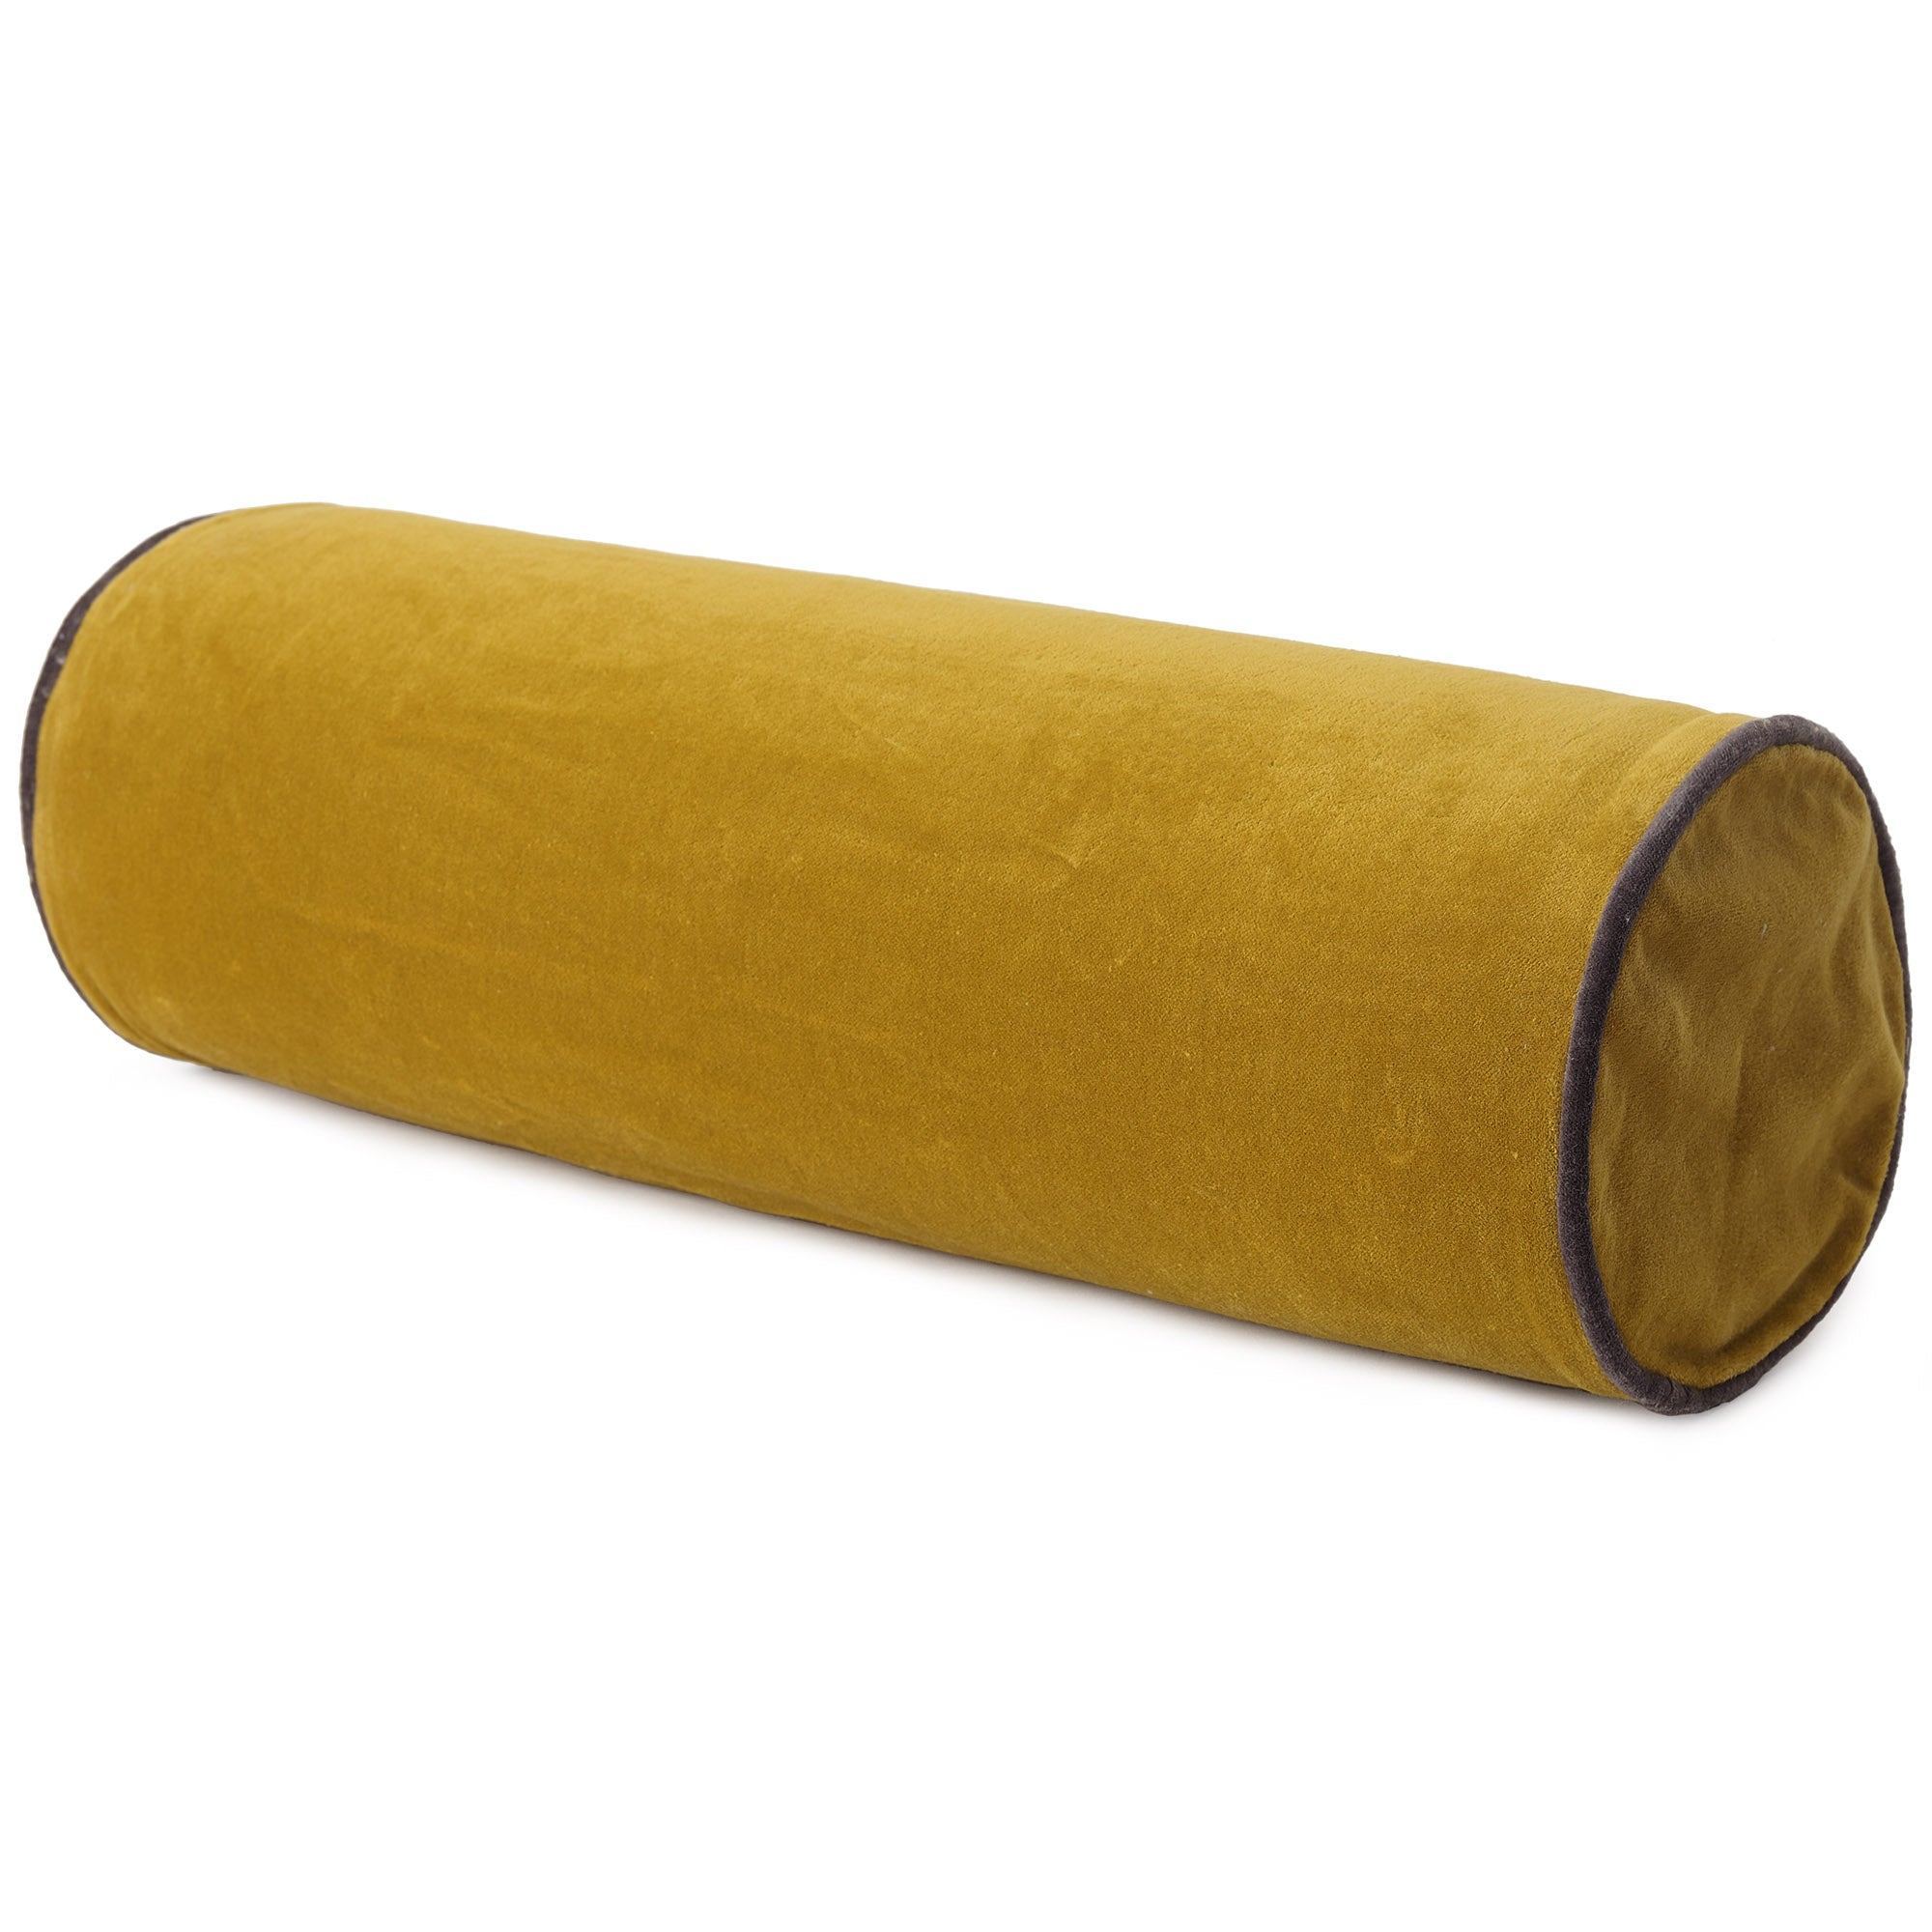 Suri Bolster [Bright mustard/Dark grey]